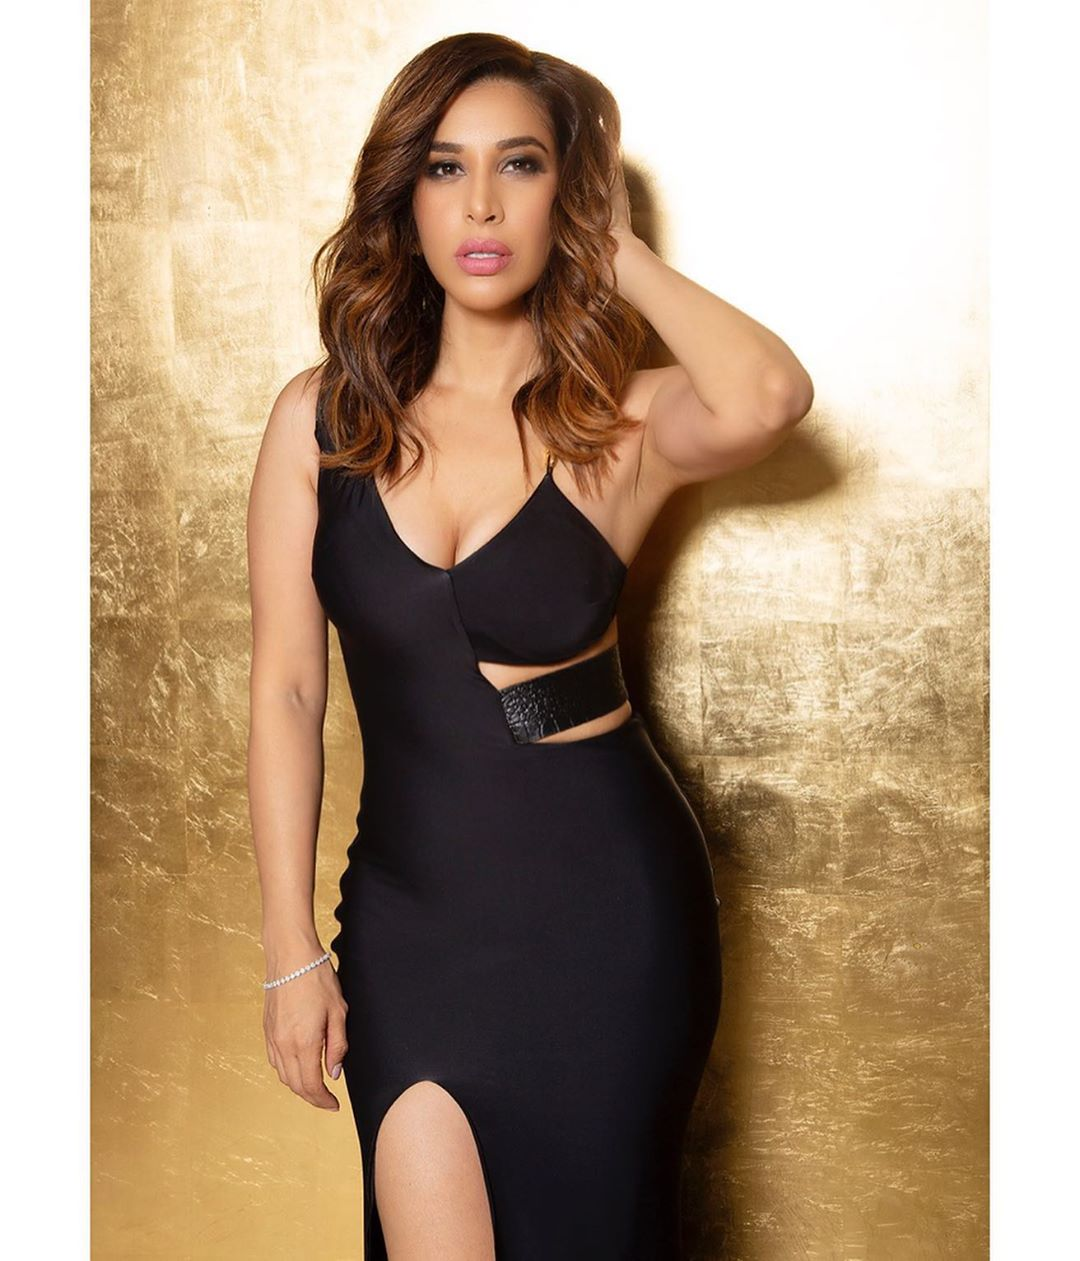 Indian actress and model sophie choudry bollywood actress hot sexy indian model bollywood tadka